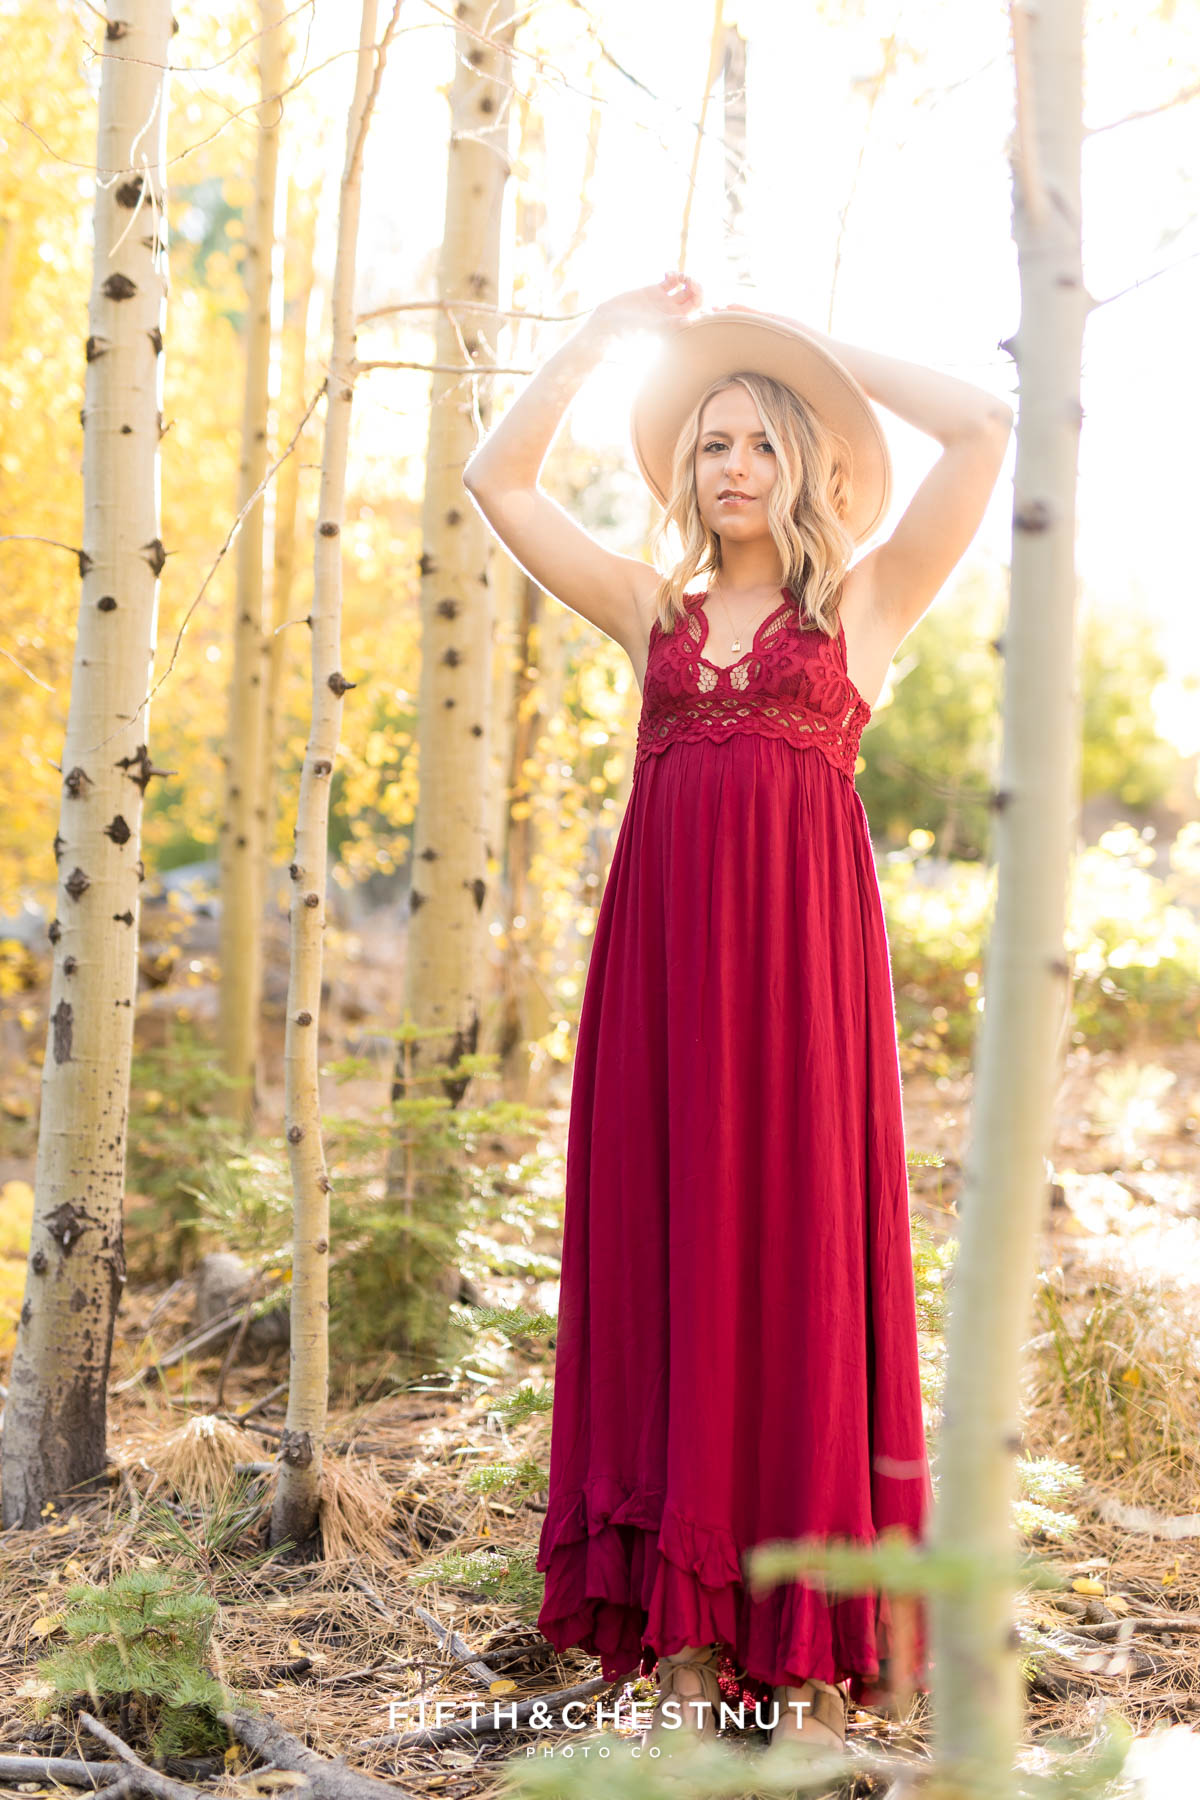 Fall Boho Chic Reno High School Senior Portraits at Galena Creek Park by Reno High School Senior Photographer